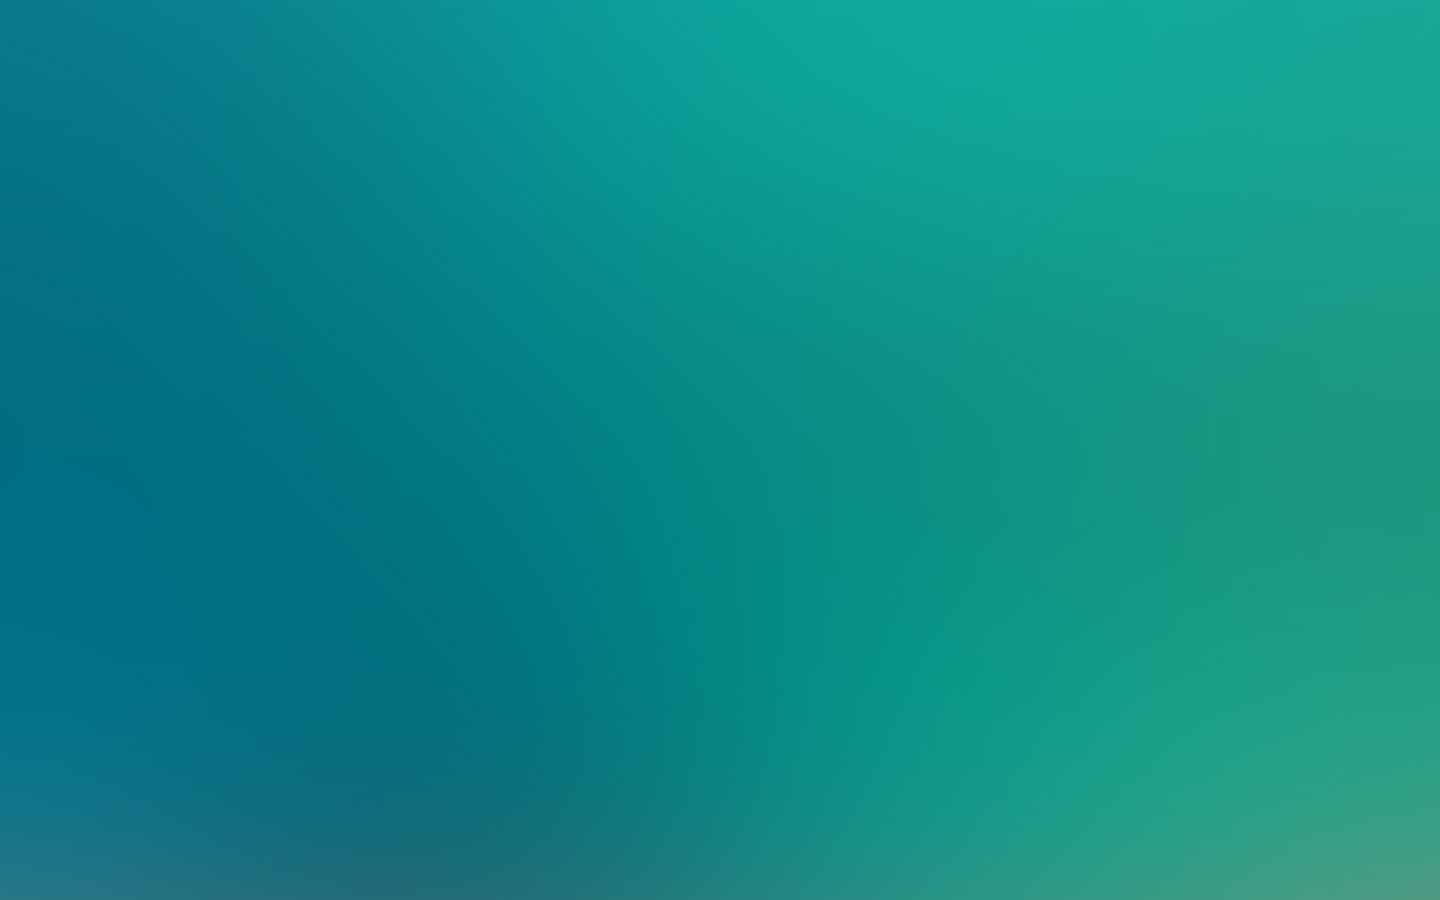 Wallpaper For Desktop Laptop Si72 Green Emerald Blue